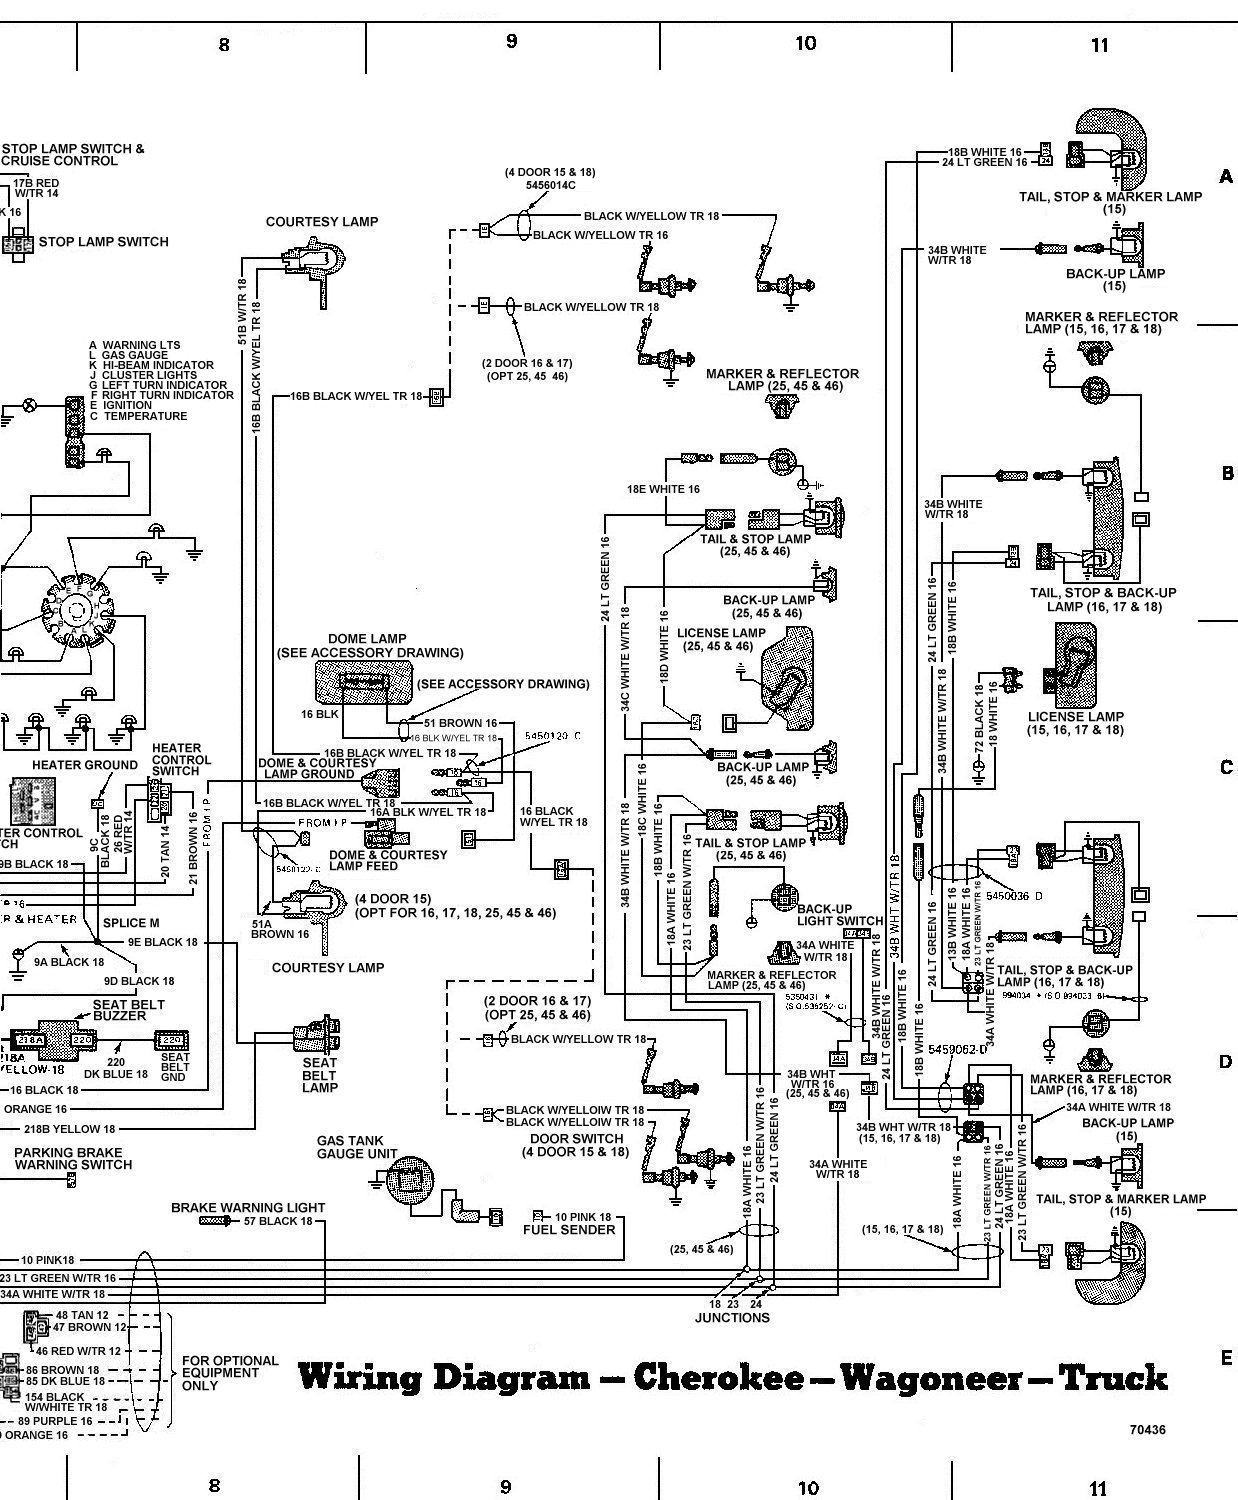 Wiring diagram for 1988 jeep cherokee wiring diagrams schematics 1987 jeep yj wiring diagram wiring diagrams schematics 1987 wrangler wiring diagram wiring diagrams schematics 1987 jeep yj wiring diagram 1987 jeep swarovskicordoba Image collections